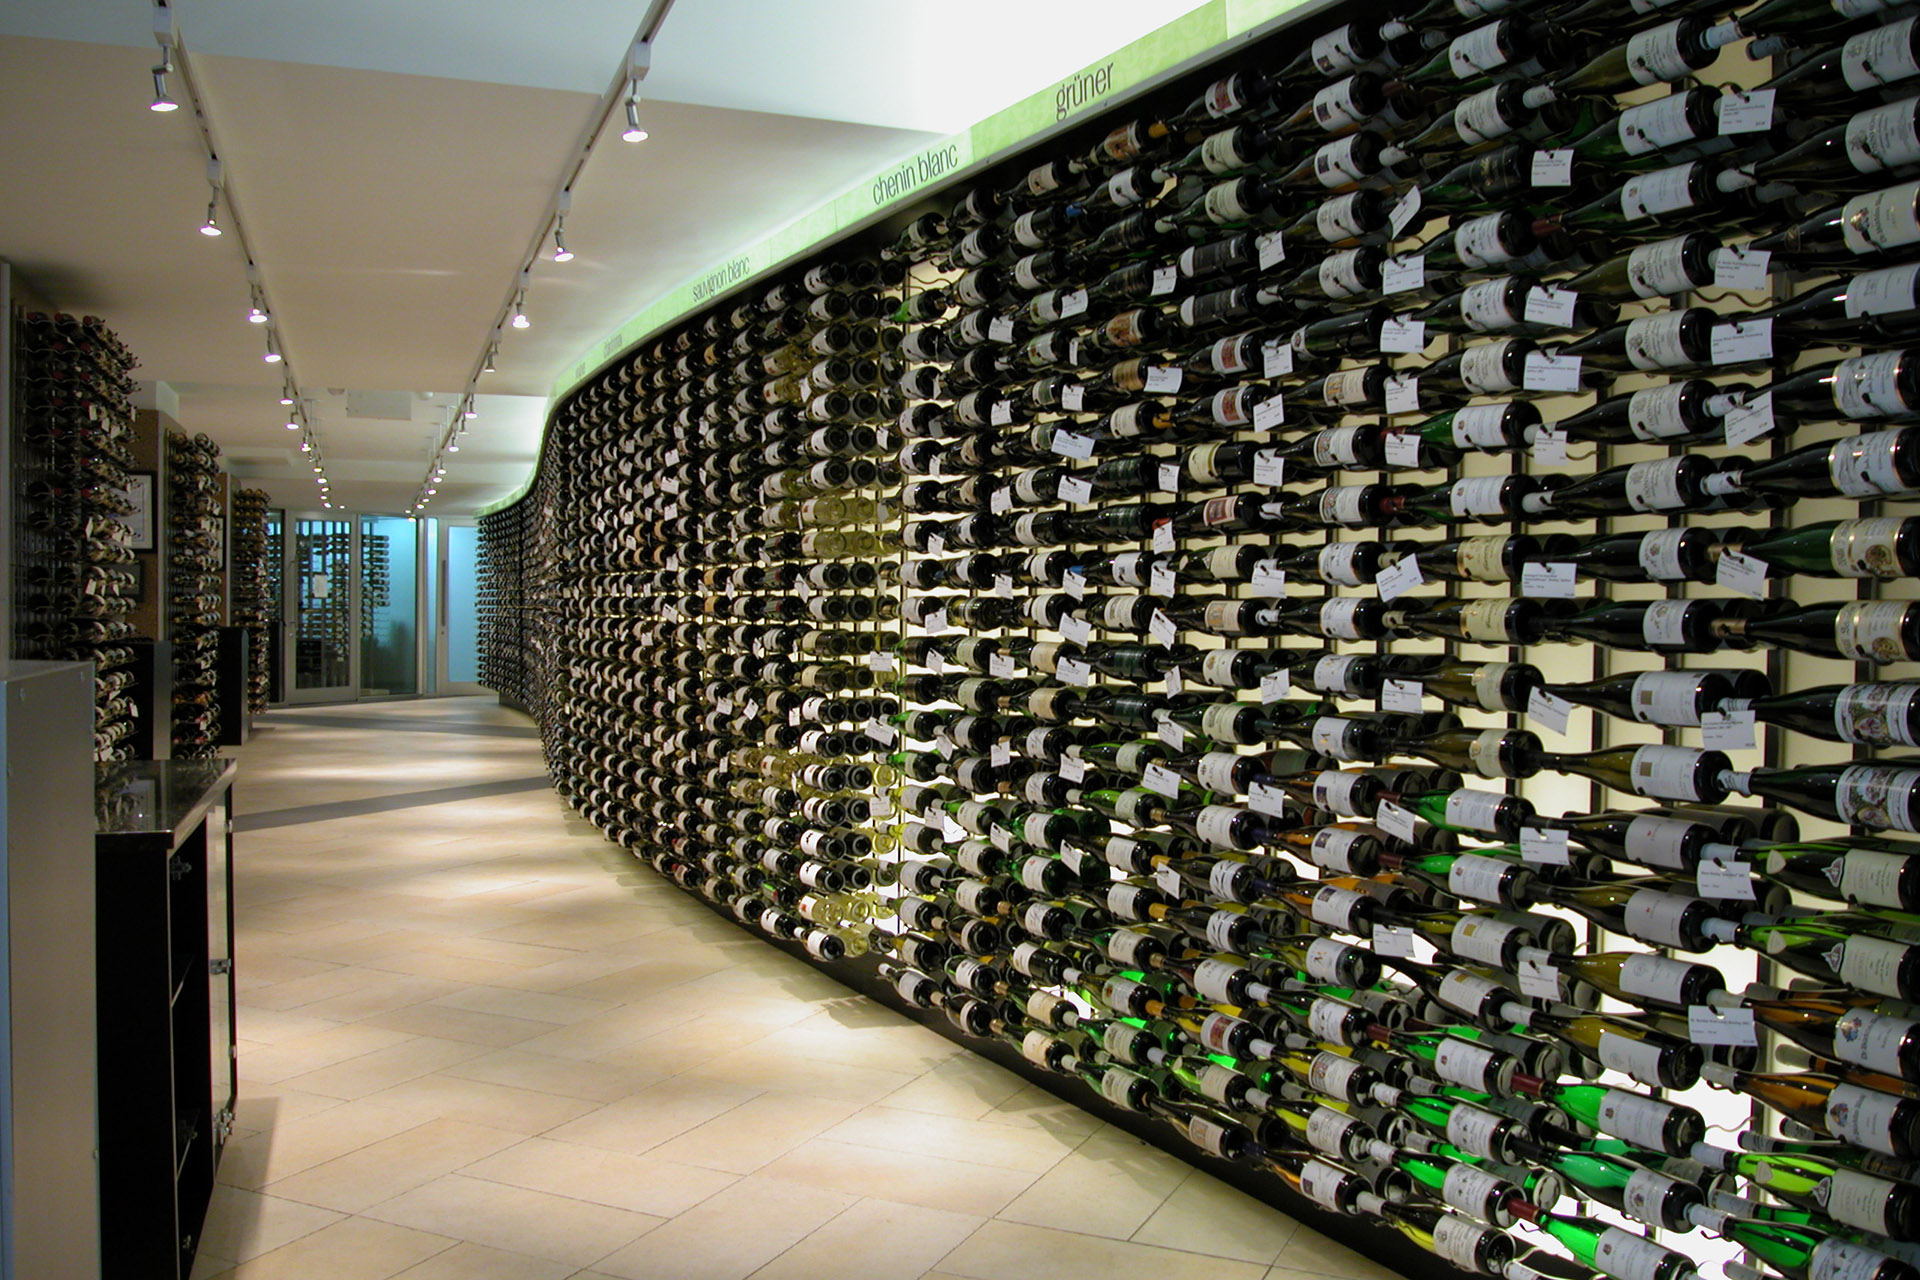 The curved wine wall at Crush Wine & Spirits, New York City, which forms an ingenious way to create space for 600 additional bottles